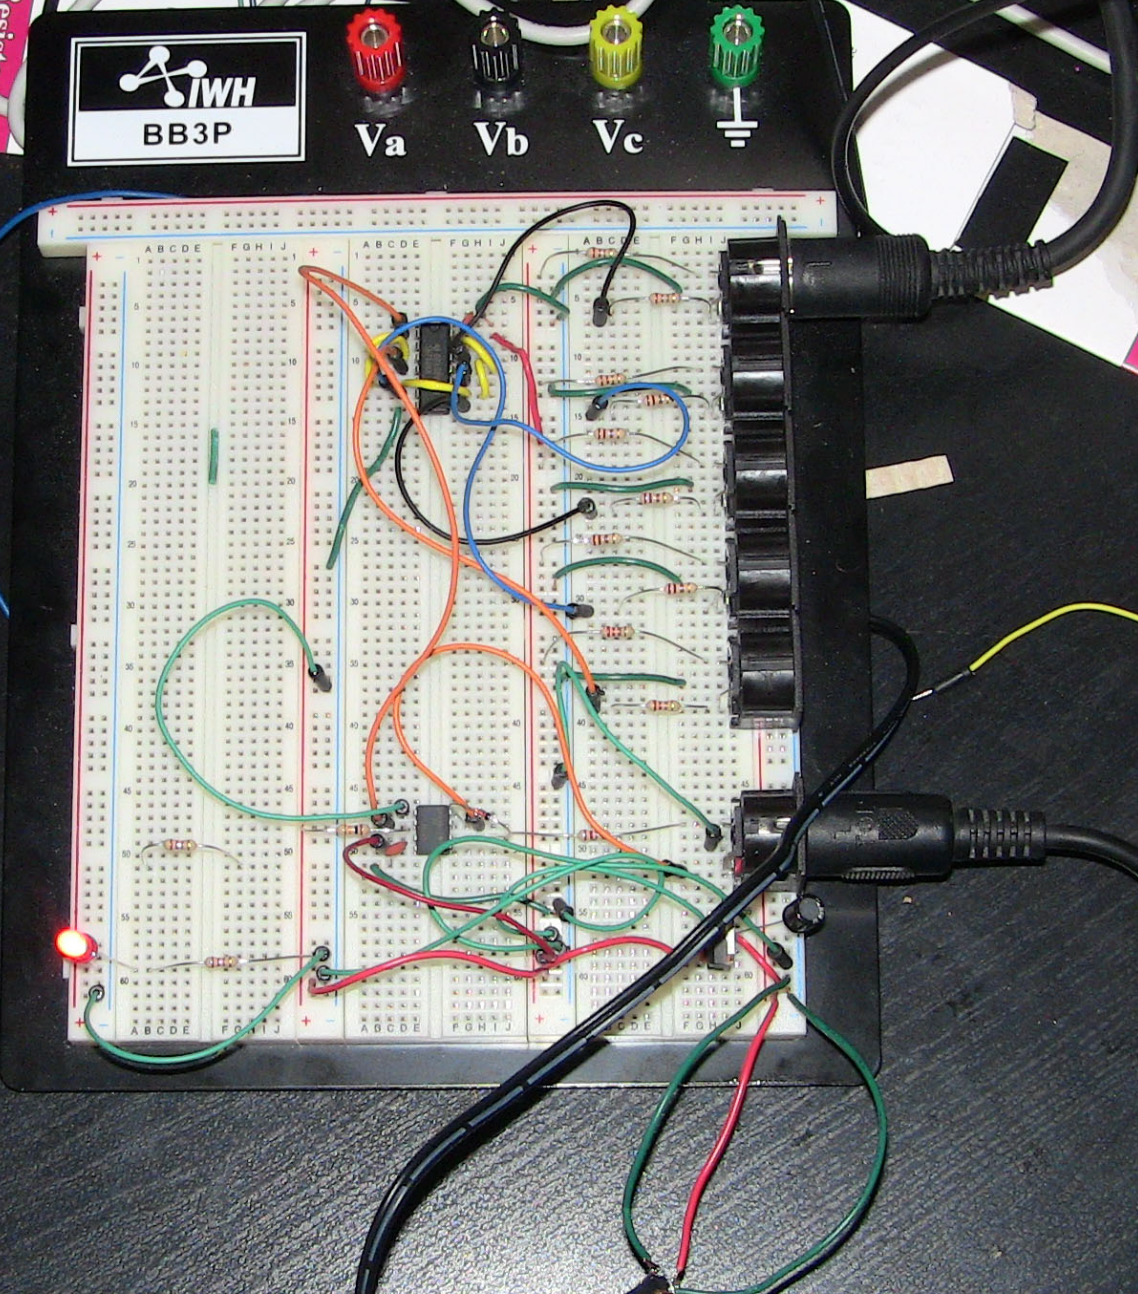 Building A Midi Thru Box Part 5 Circuit Board Assembly And Final Build Images Of Image